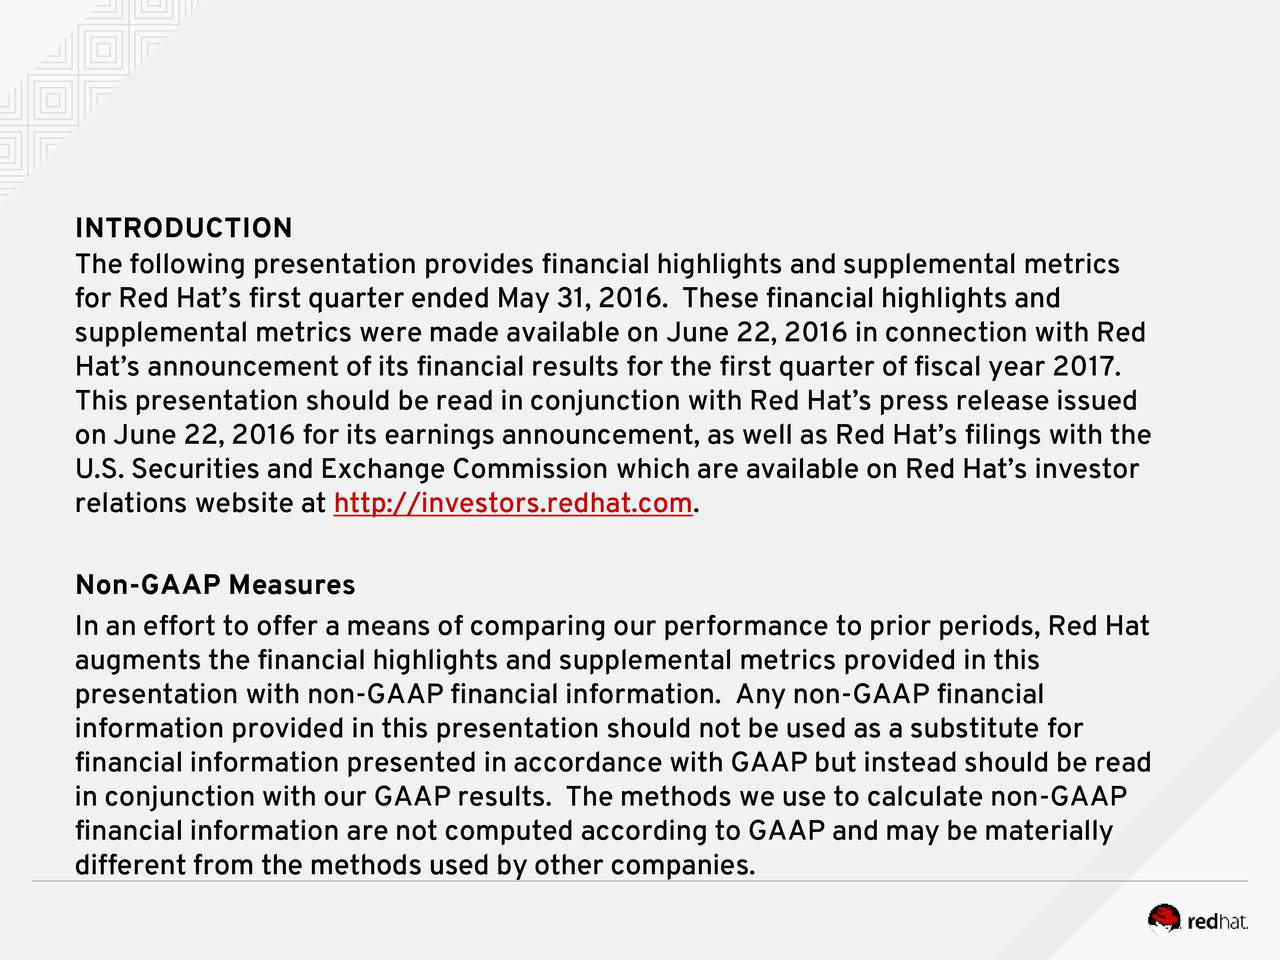 The following presentation provides financial highlights and supplemental metrics for Red Hats first quarter ended May 31, 2016. These financial highlights and supplemental metrics were made available on June 22, 2016 in connection with Red Hats announcement of its financial results for the first quarter of fiscal year 2017. This presentation should be read in conjunction with Red Hats press release issued on June 22, 2016 for its earnings announcement, as well as Red Hats filings with the U.S. Securities and Exchange Commission which are available on Red Hats investor relations website at http://investors.redhat.com. Non-GAAP Measures In an effort to offer a means of comparing our performance to prior periods, Red Hat augments the financial highlights and supplemental metrics provided in this presentation with non-GAAP financial information. Any non-GAAP financial information provided in this presentation should not be used as a substitute for financial information presented in accordance with GAAP but instead should be read in conjunction with our GAAP results. The methods we use to calculate non-GAAP financial information are not computed according to GAAP and may be materially different from the methods used by other companies.